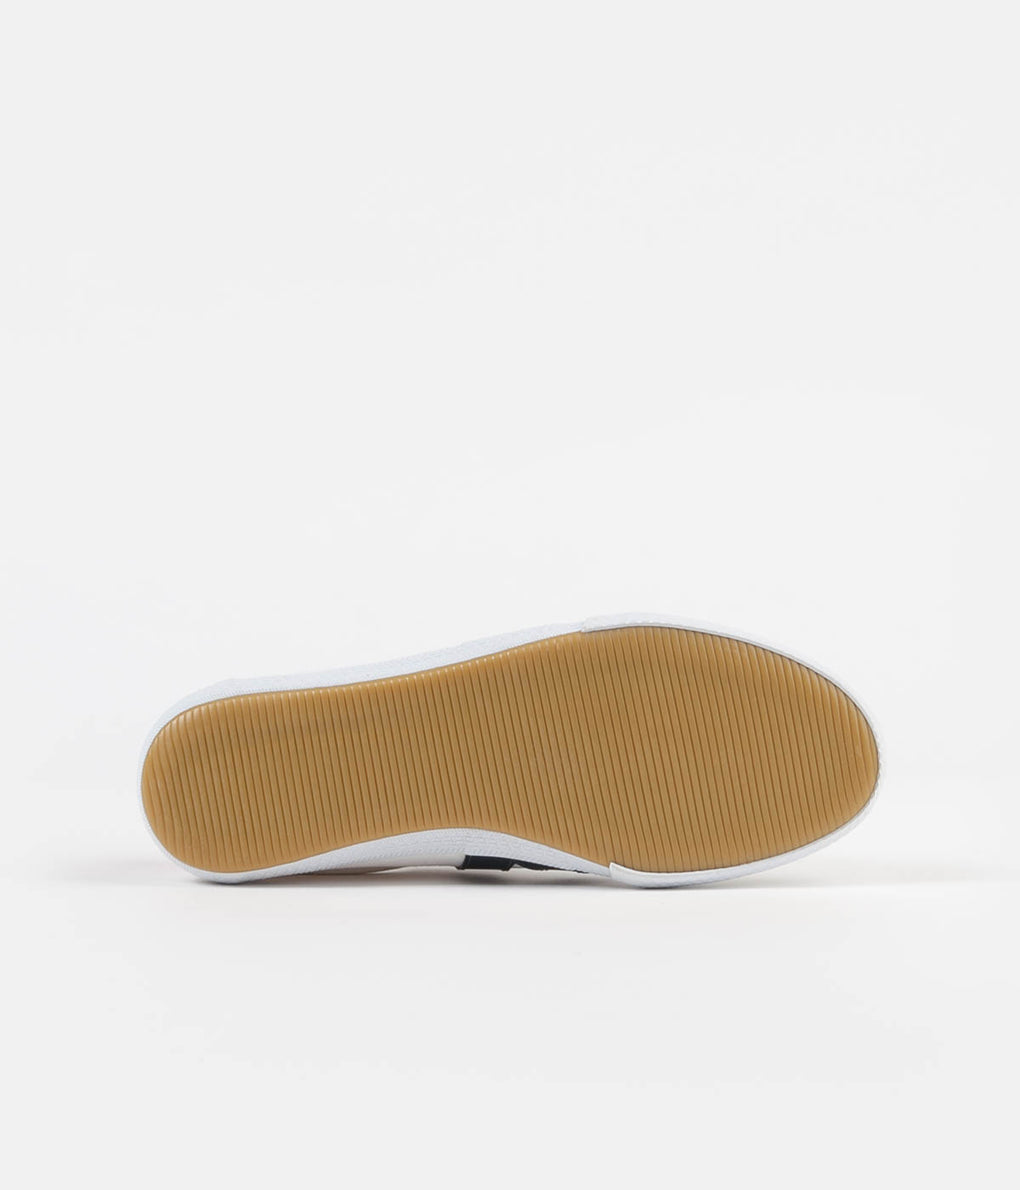 Veja Volley Canvas Shoes - White / Nautico / Pekin